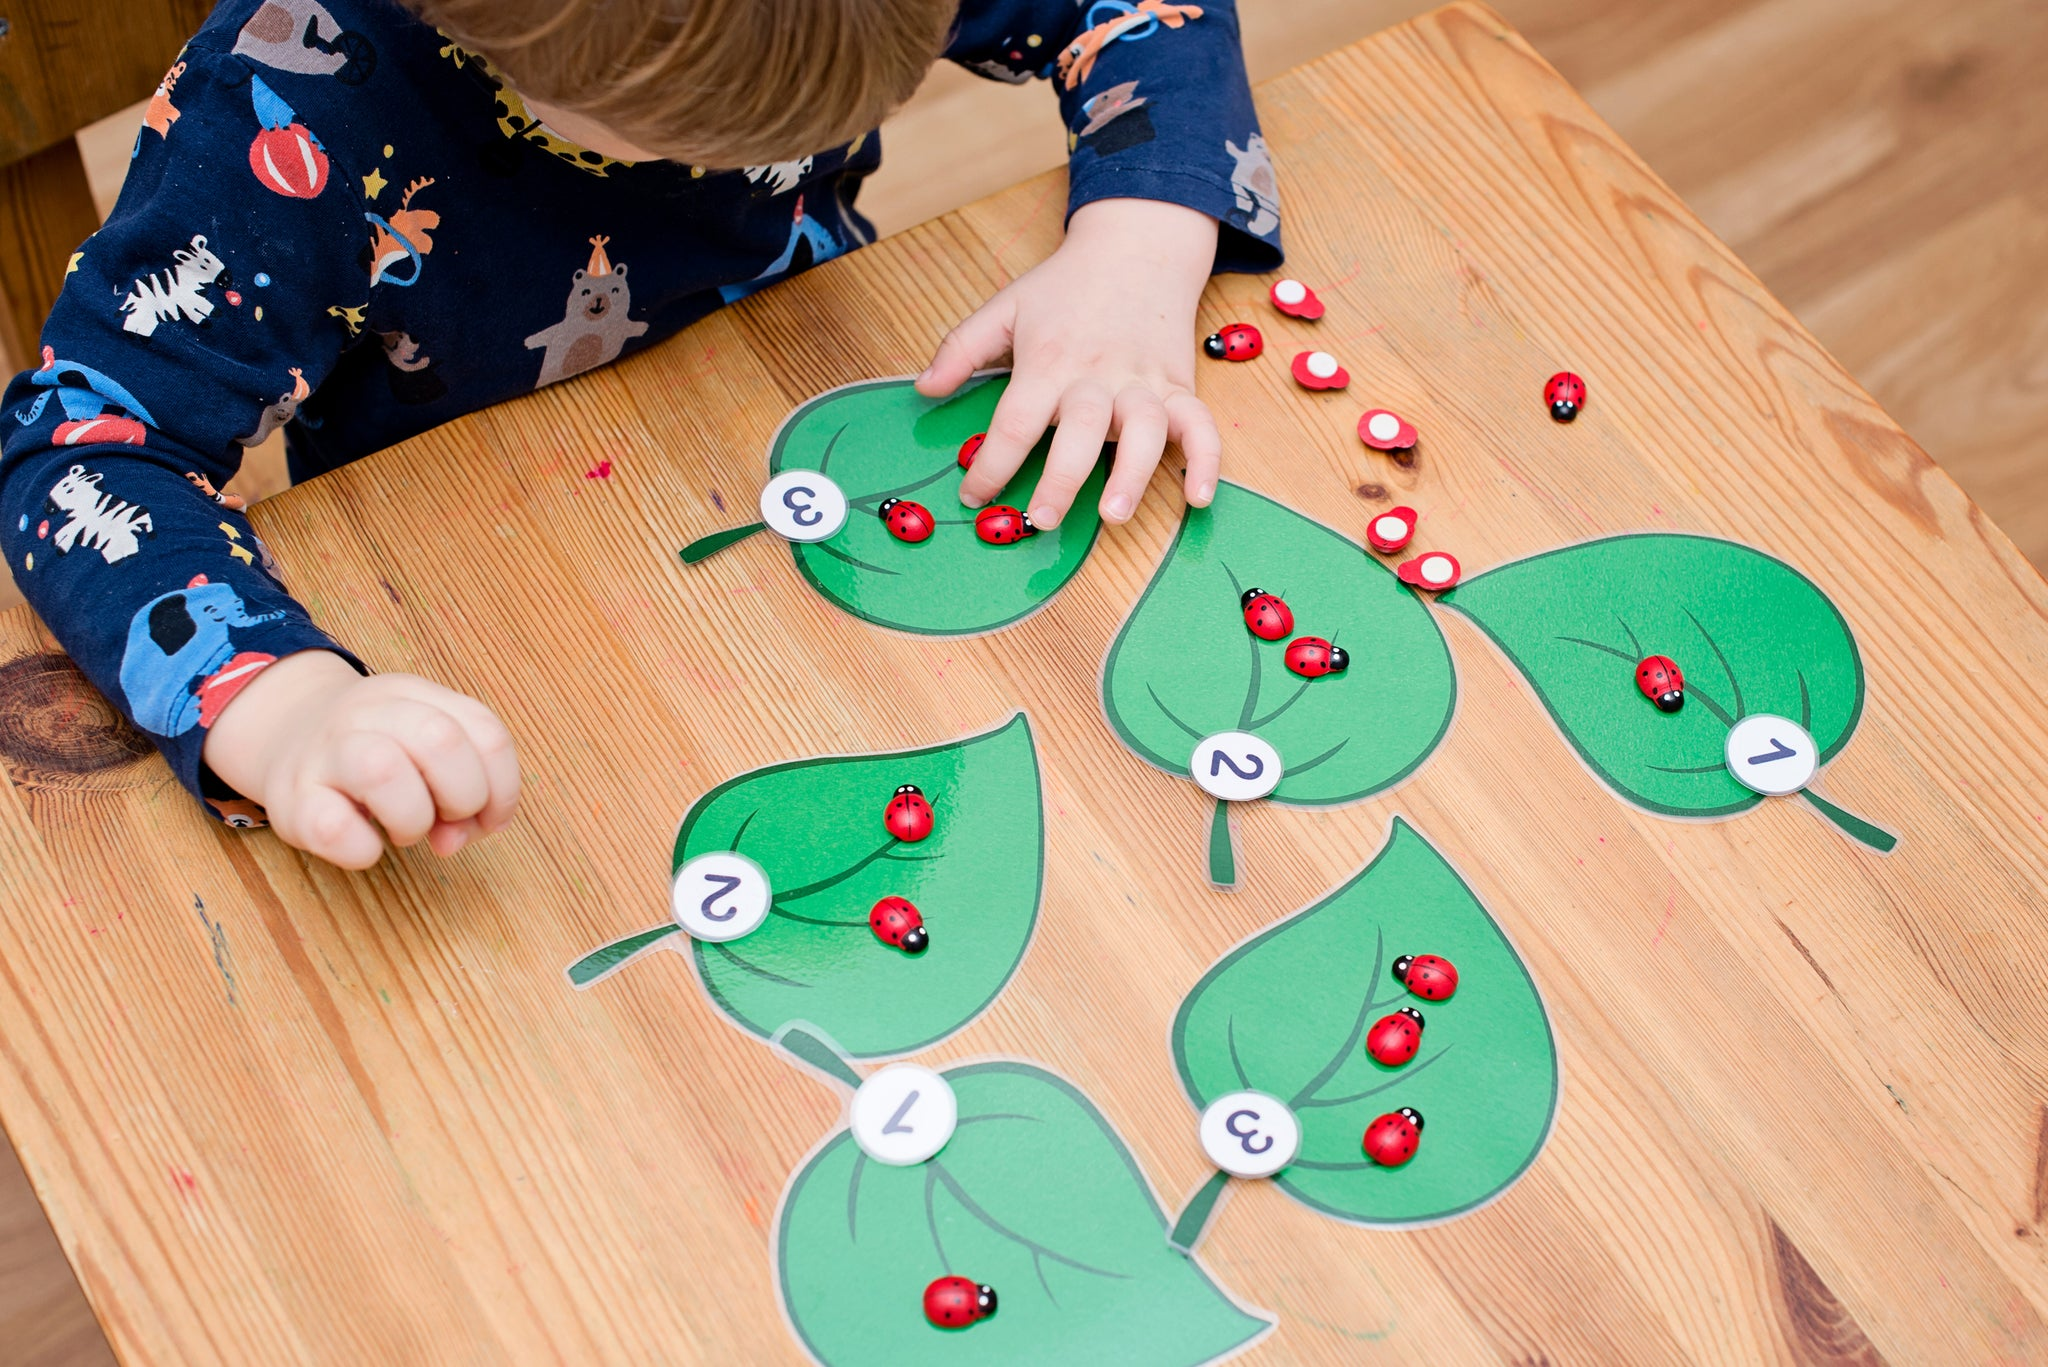 Counting Game For Childhood Early Development